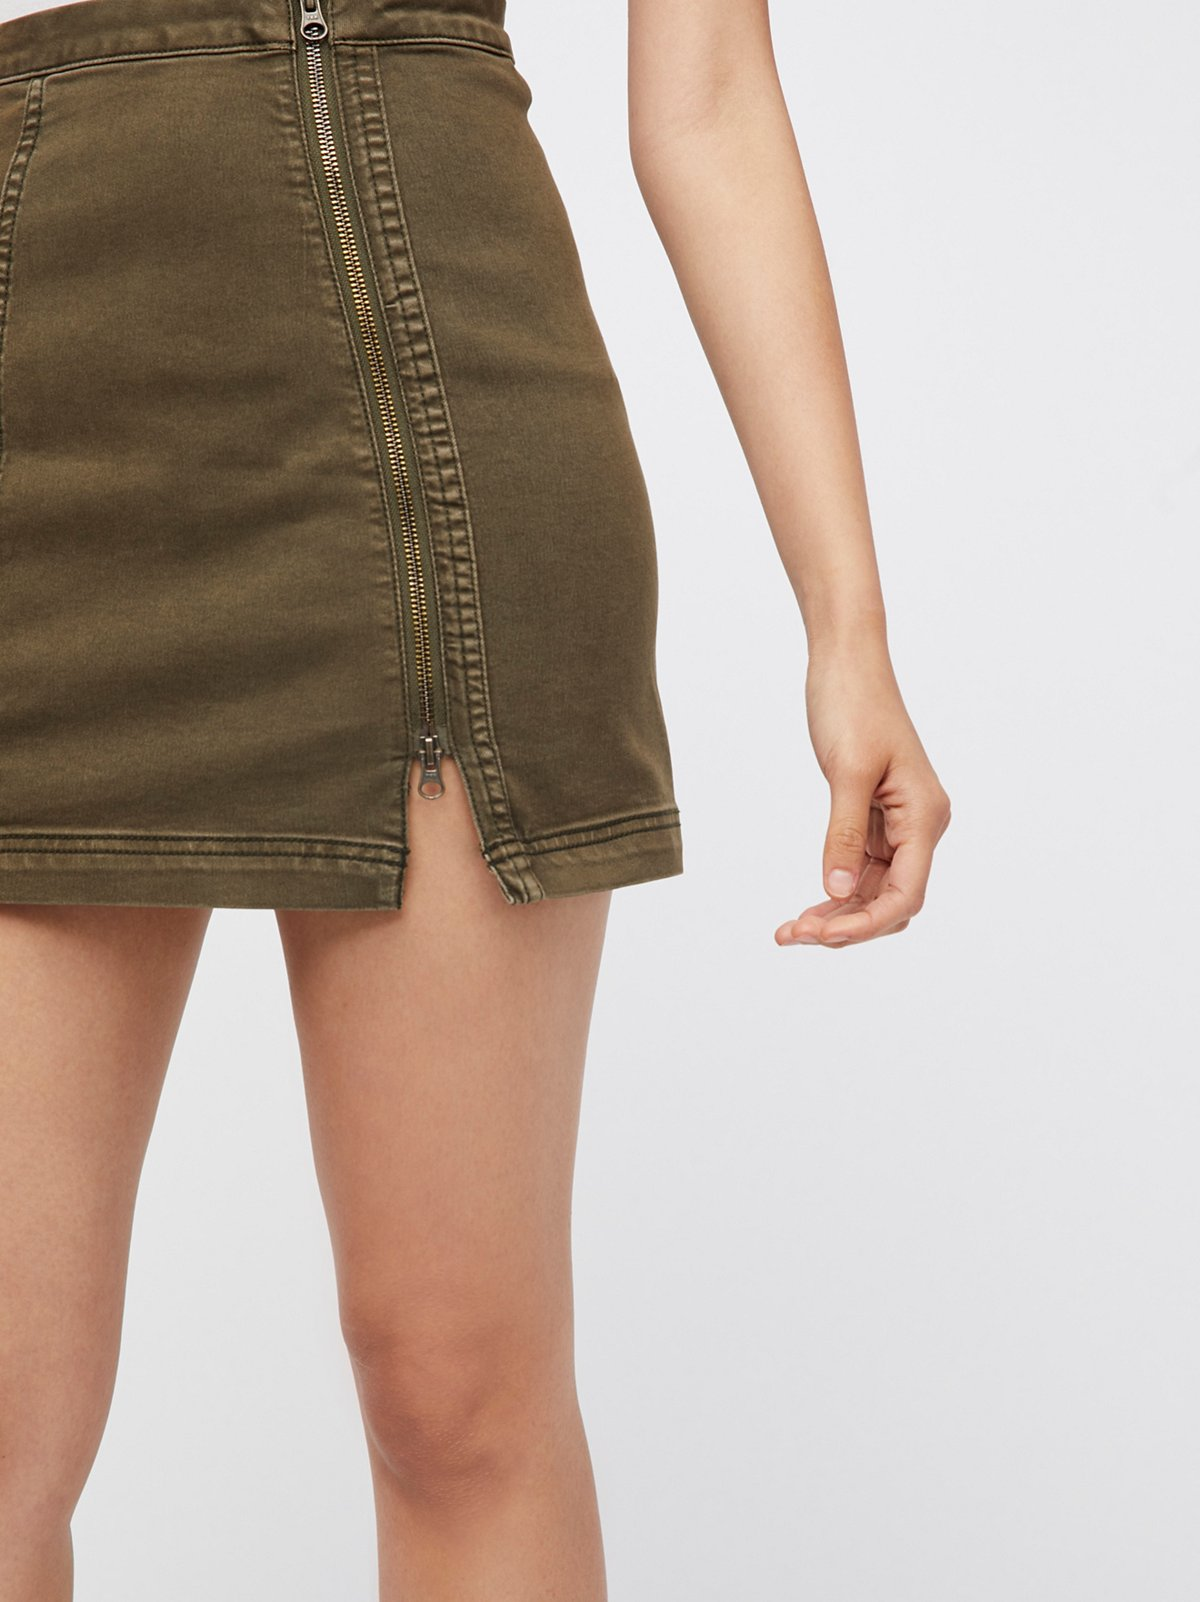 This Way Or That Mini Skirt